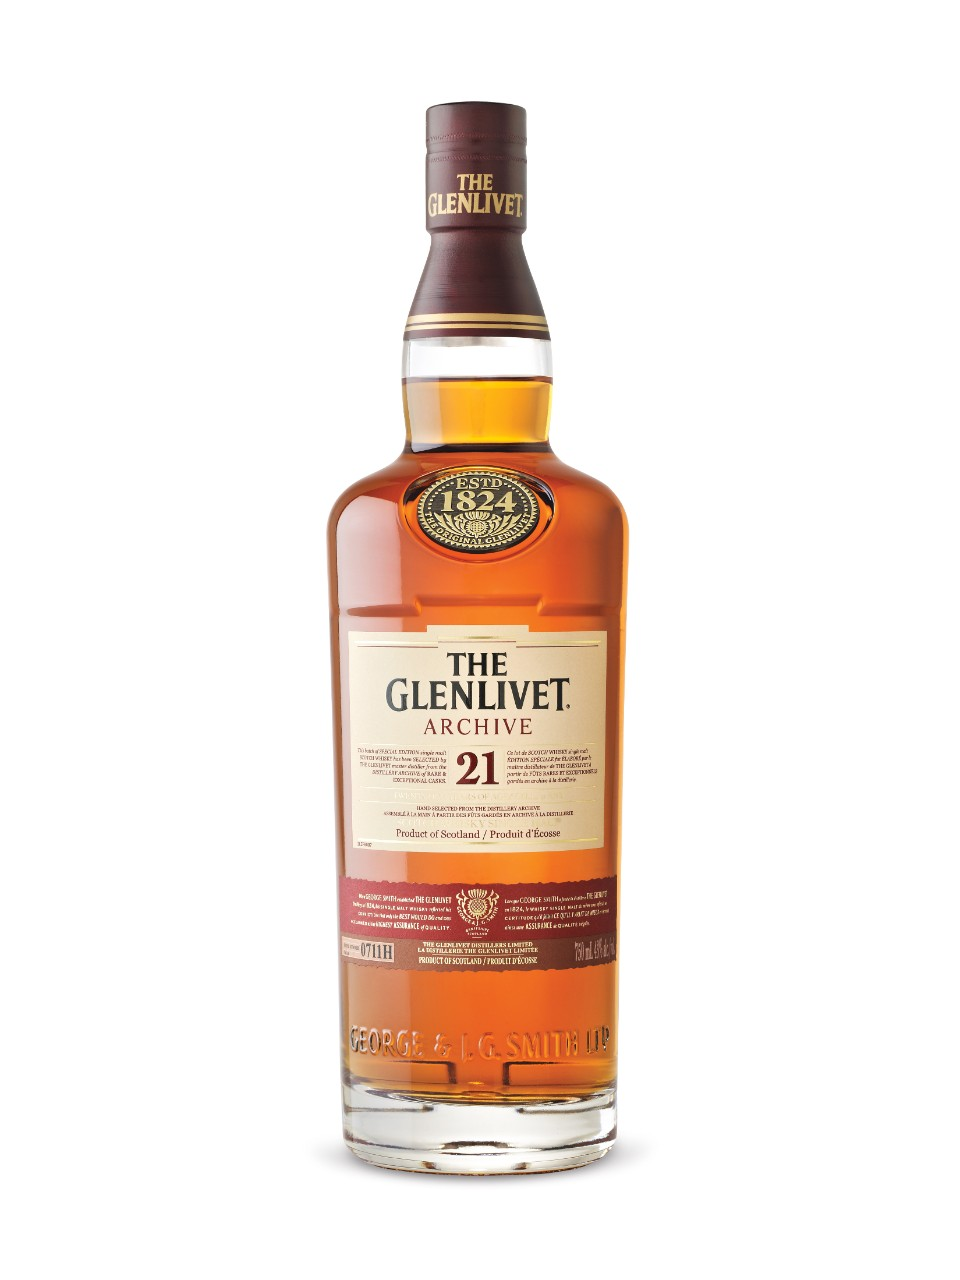 Image for The Glenlivet Archive 21 Year Old Scotch Whisky from LCBO